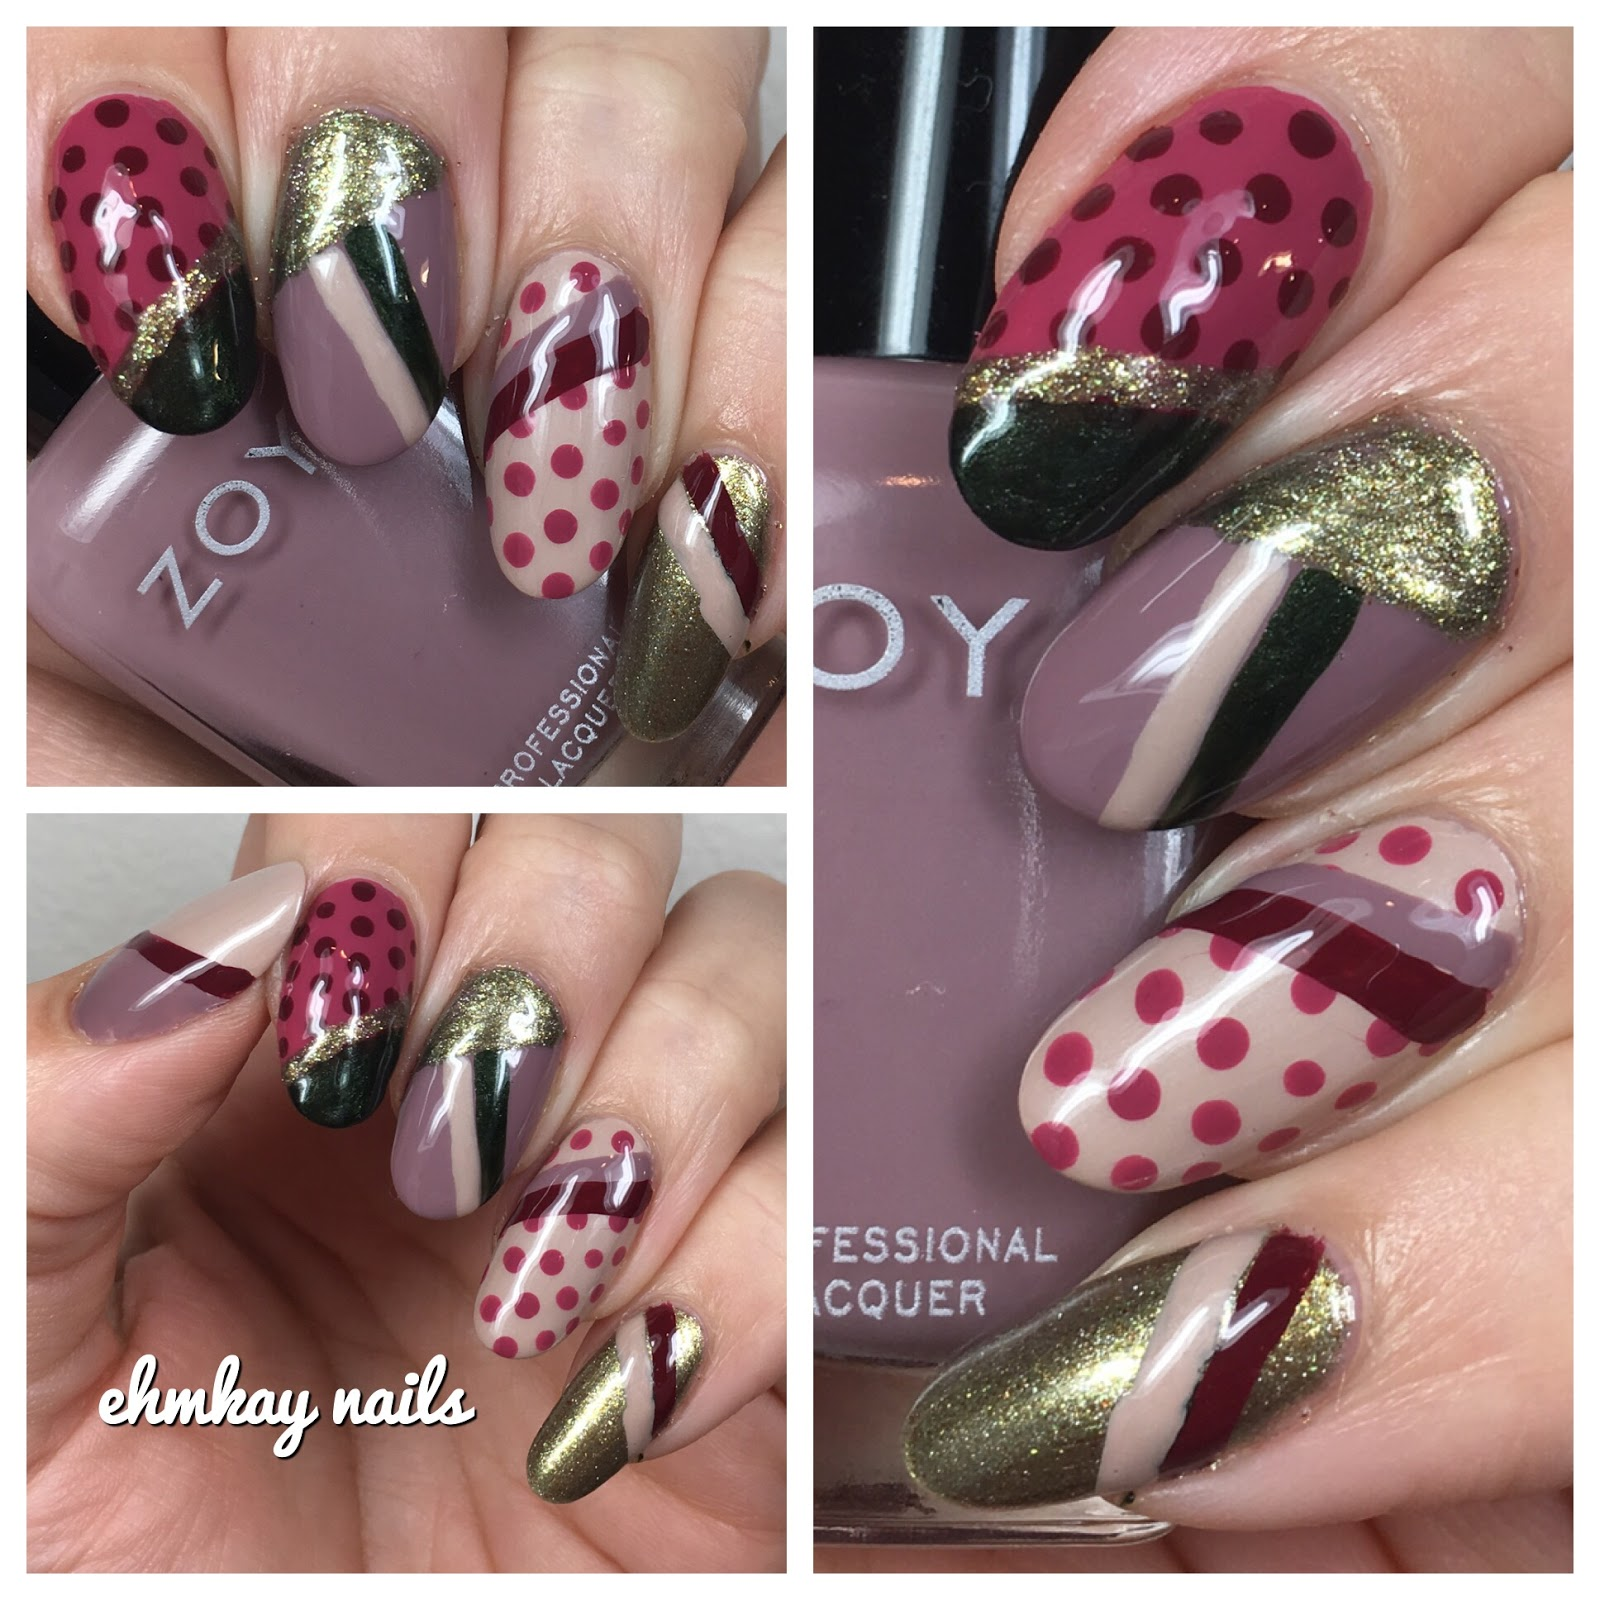 Ehmkay Nails Zoya Sophisticates Polka Dots And Stripes With Beauty